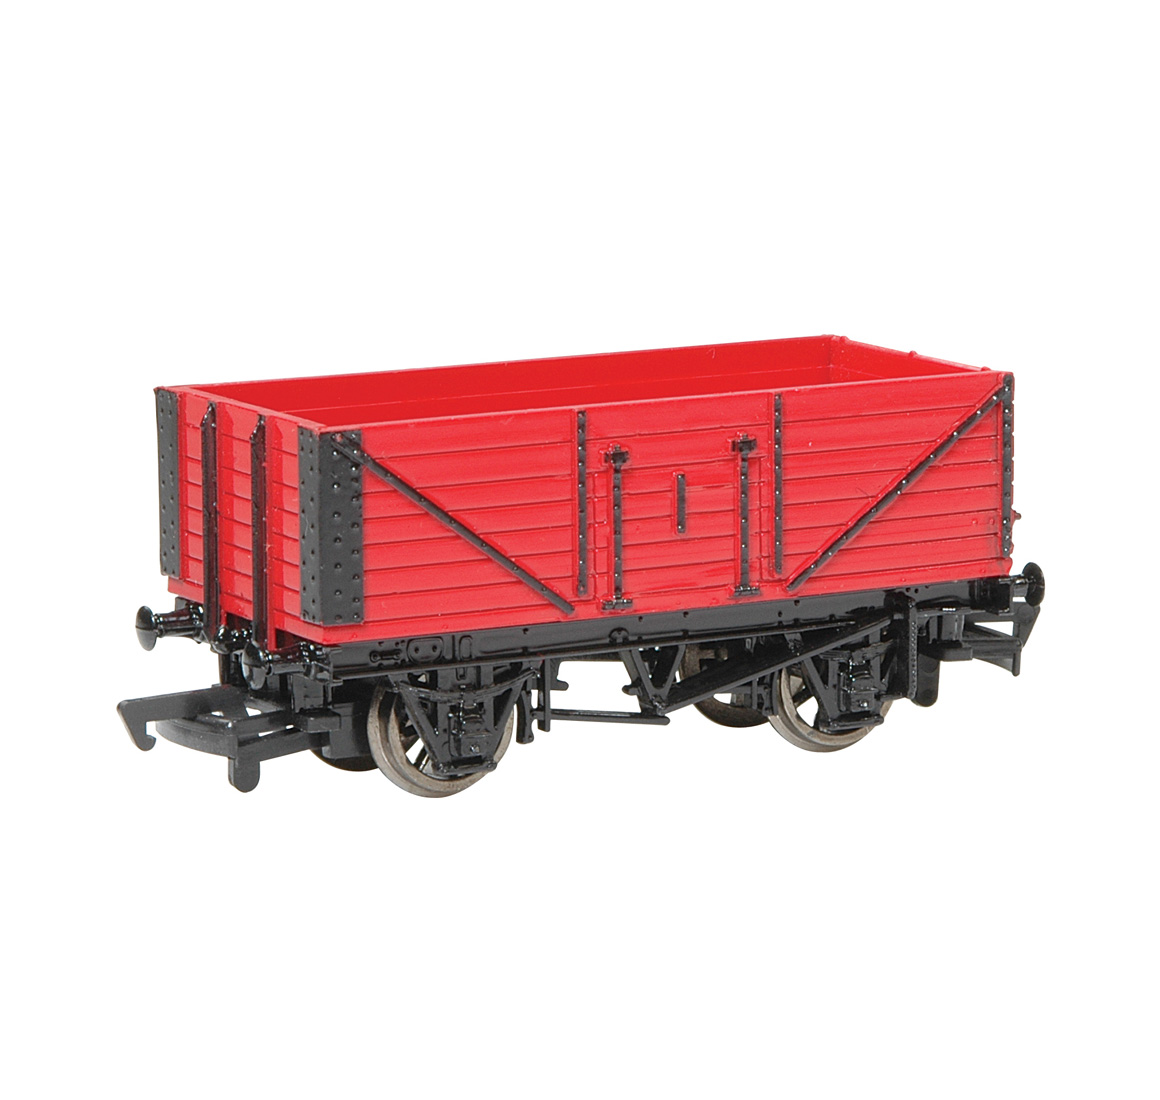 77037_thomas_friends_rolling_stock_open_wagon_red